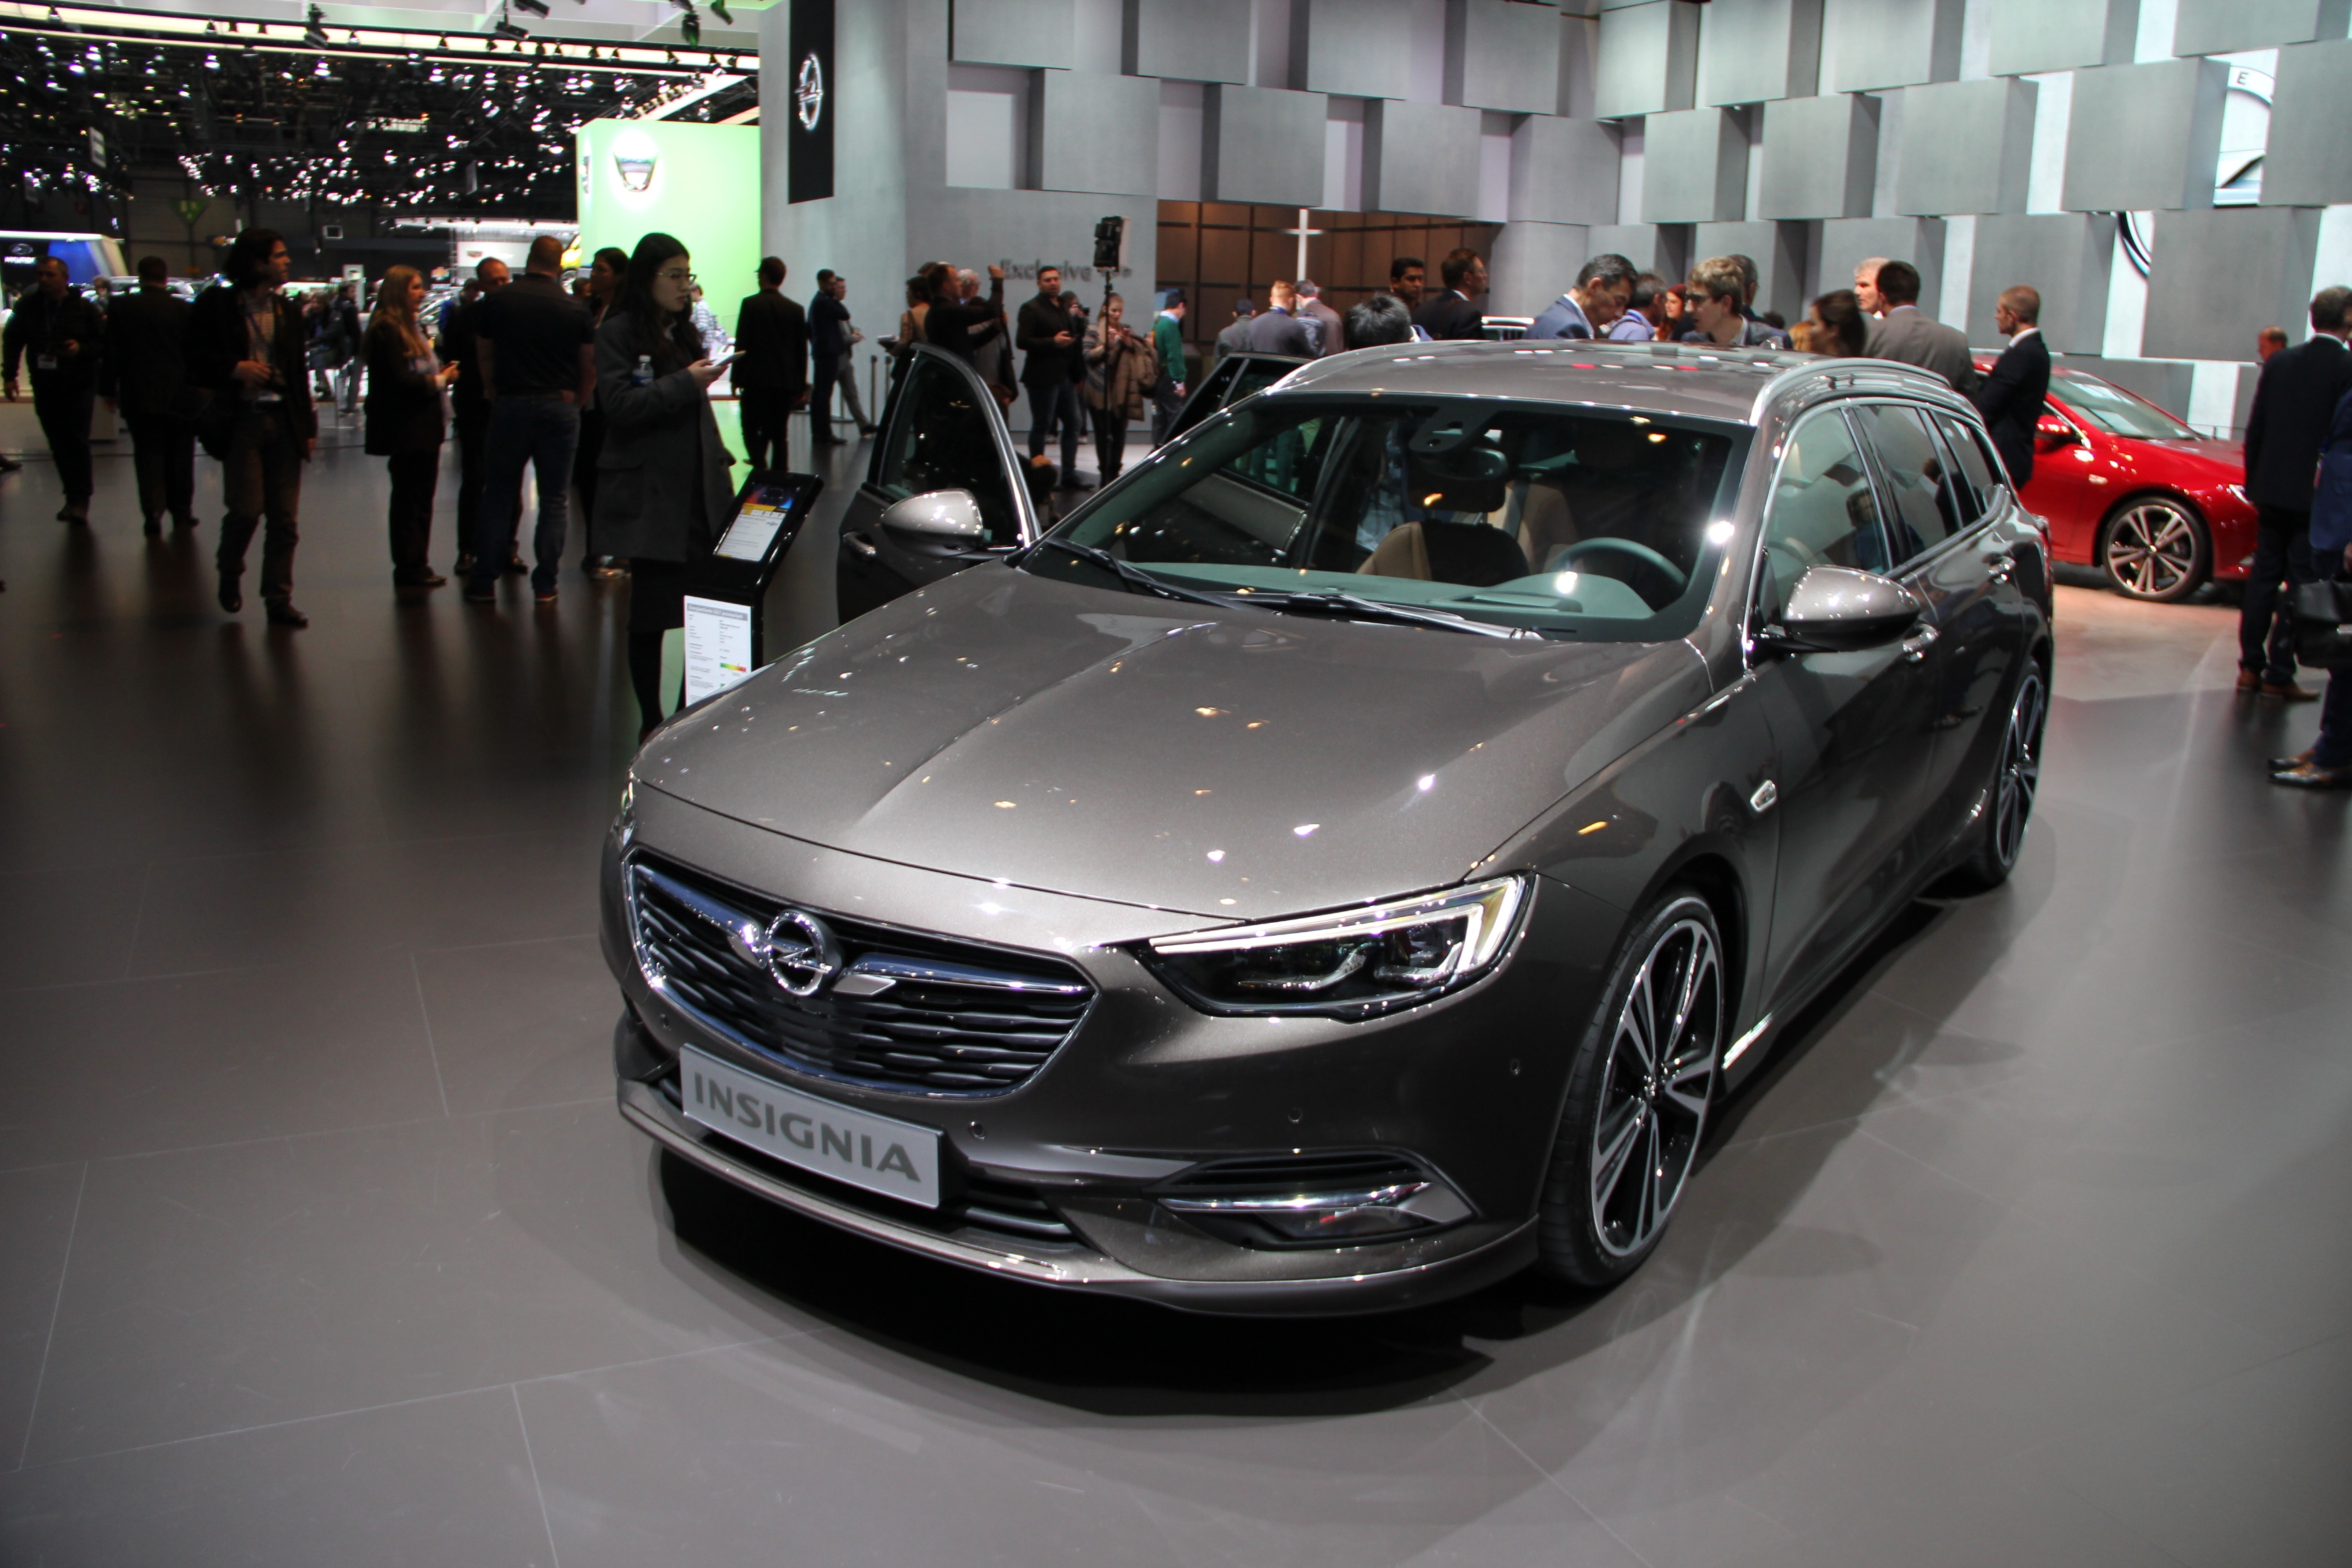 opel insignia sports tourer gigantesque vid o en direct du salon de gen ve 2017. Black Bedroom Furniture Sets. Home Design Ideas